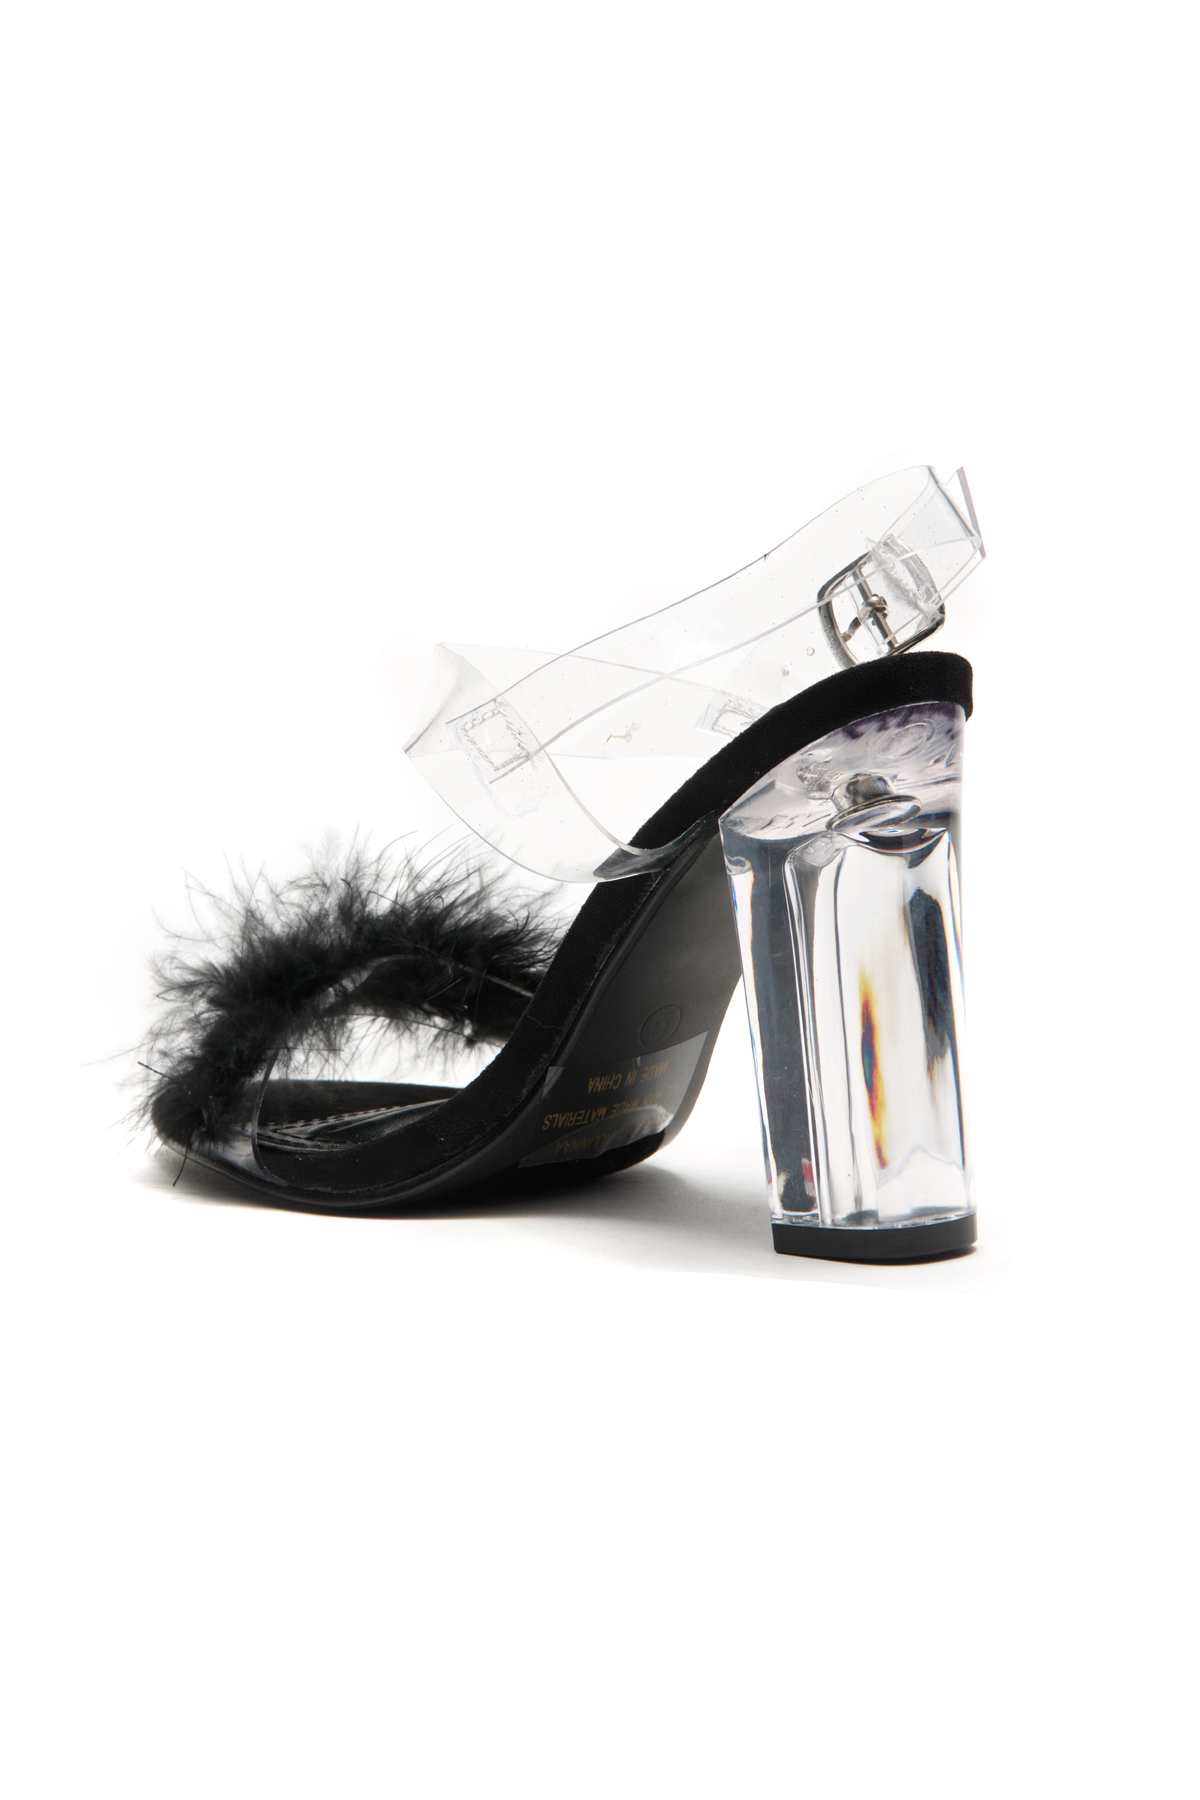 97bb54f8c2d HerStyle Women s Manmade Allinnaa Fluffy Fur Lucite Chunky Perspex Hee -  Clear  Black